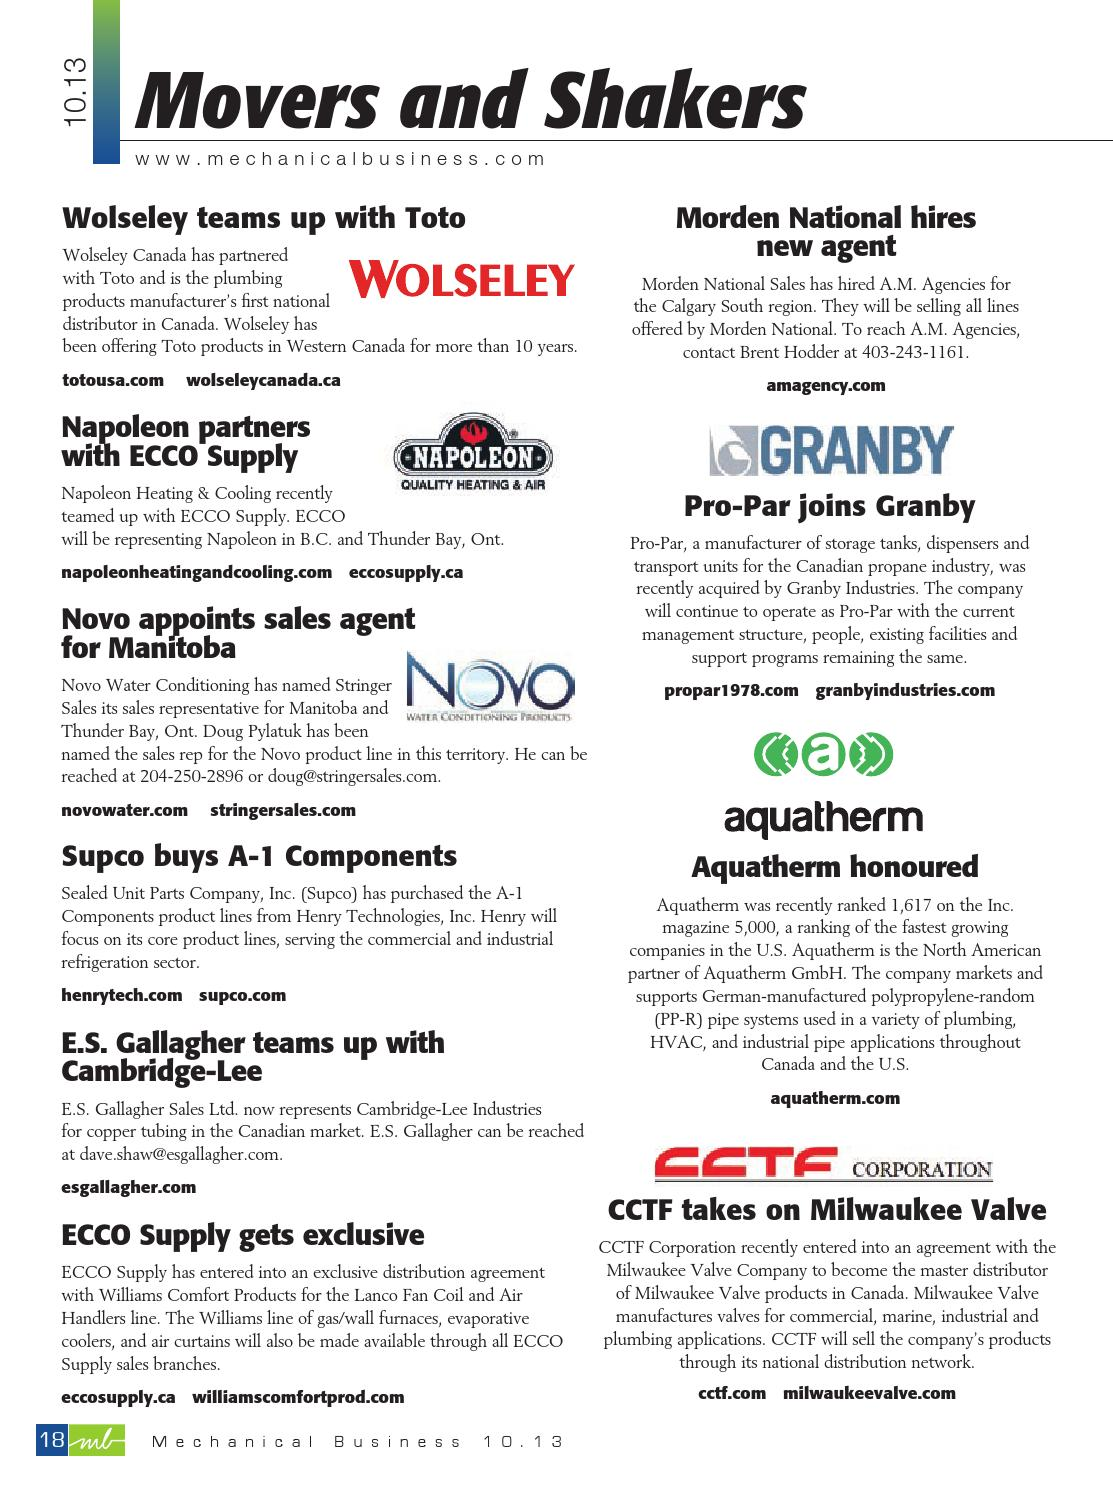 Septemberoctober 2013 By Mechanical Business Issuu